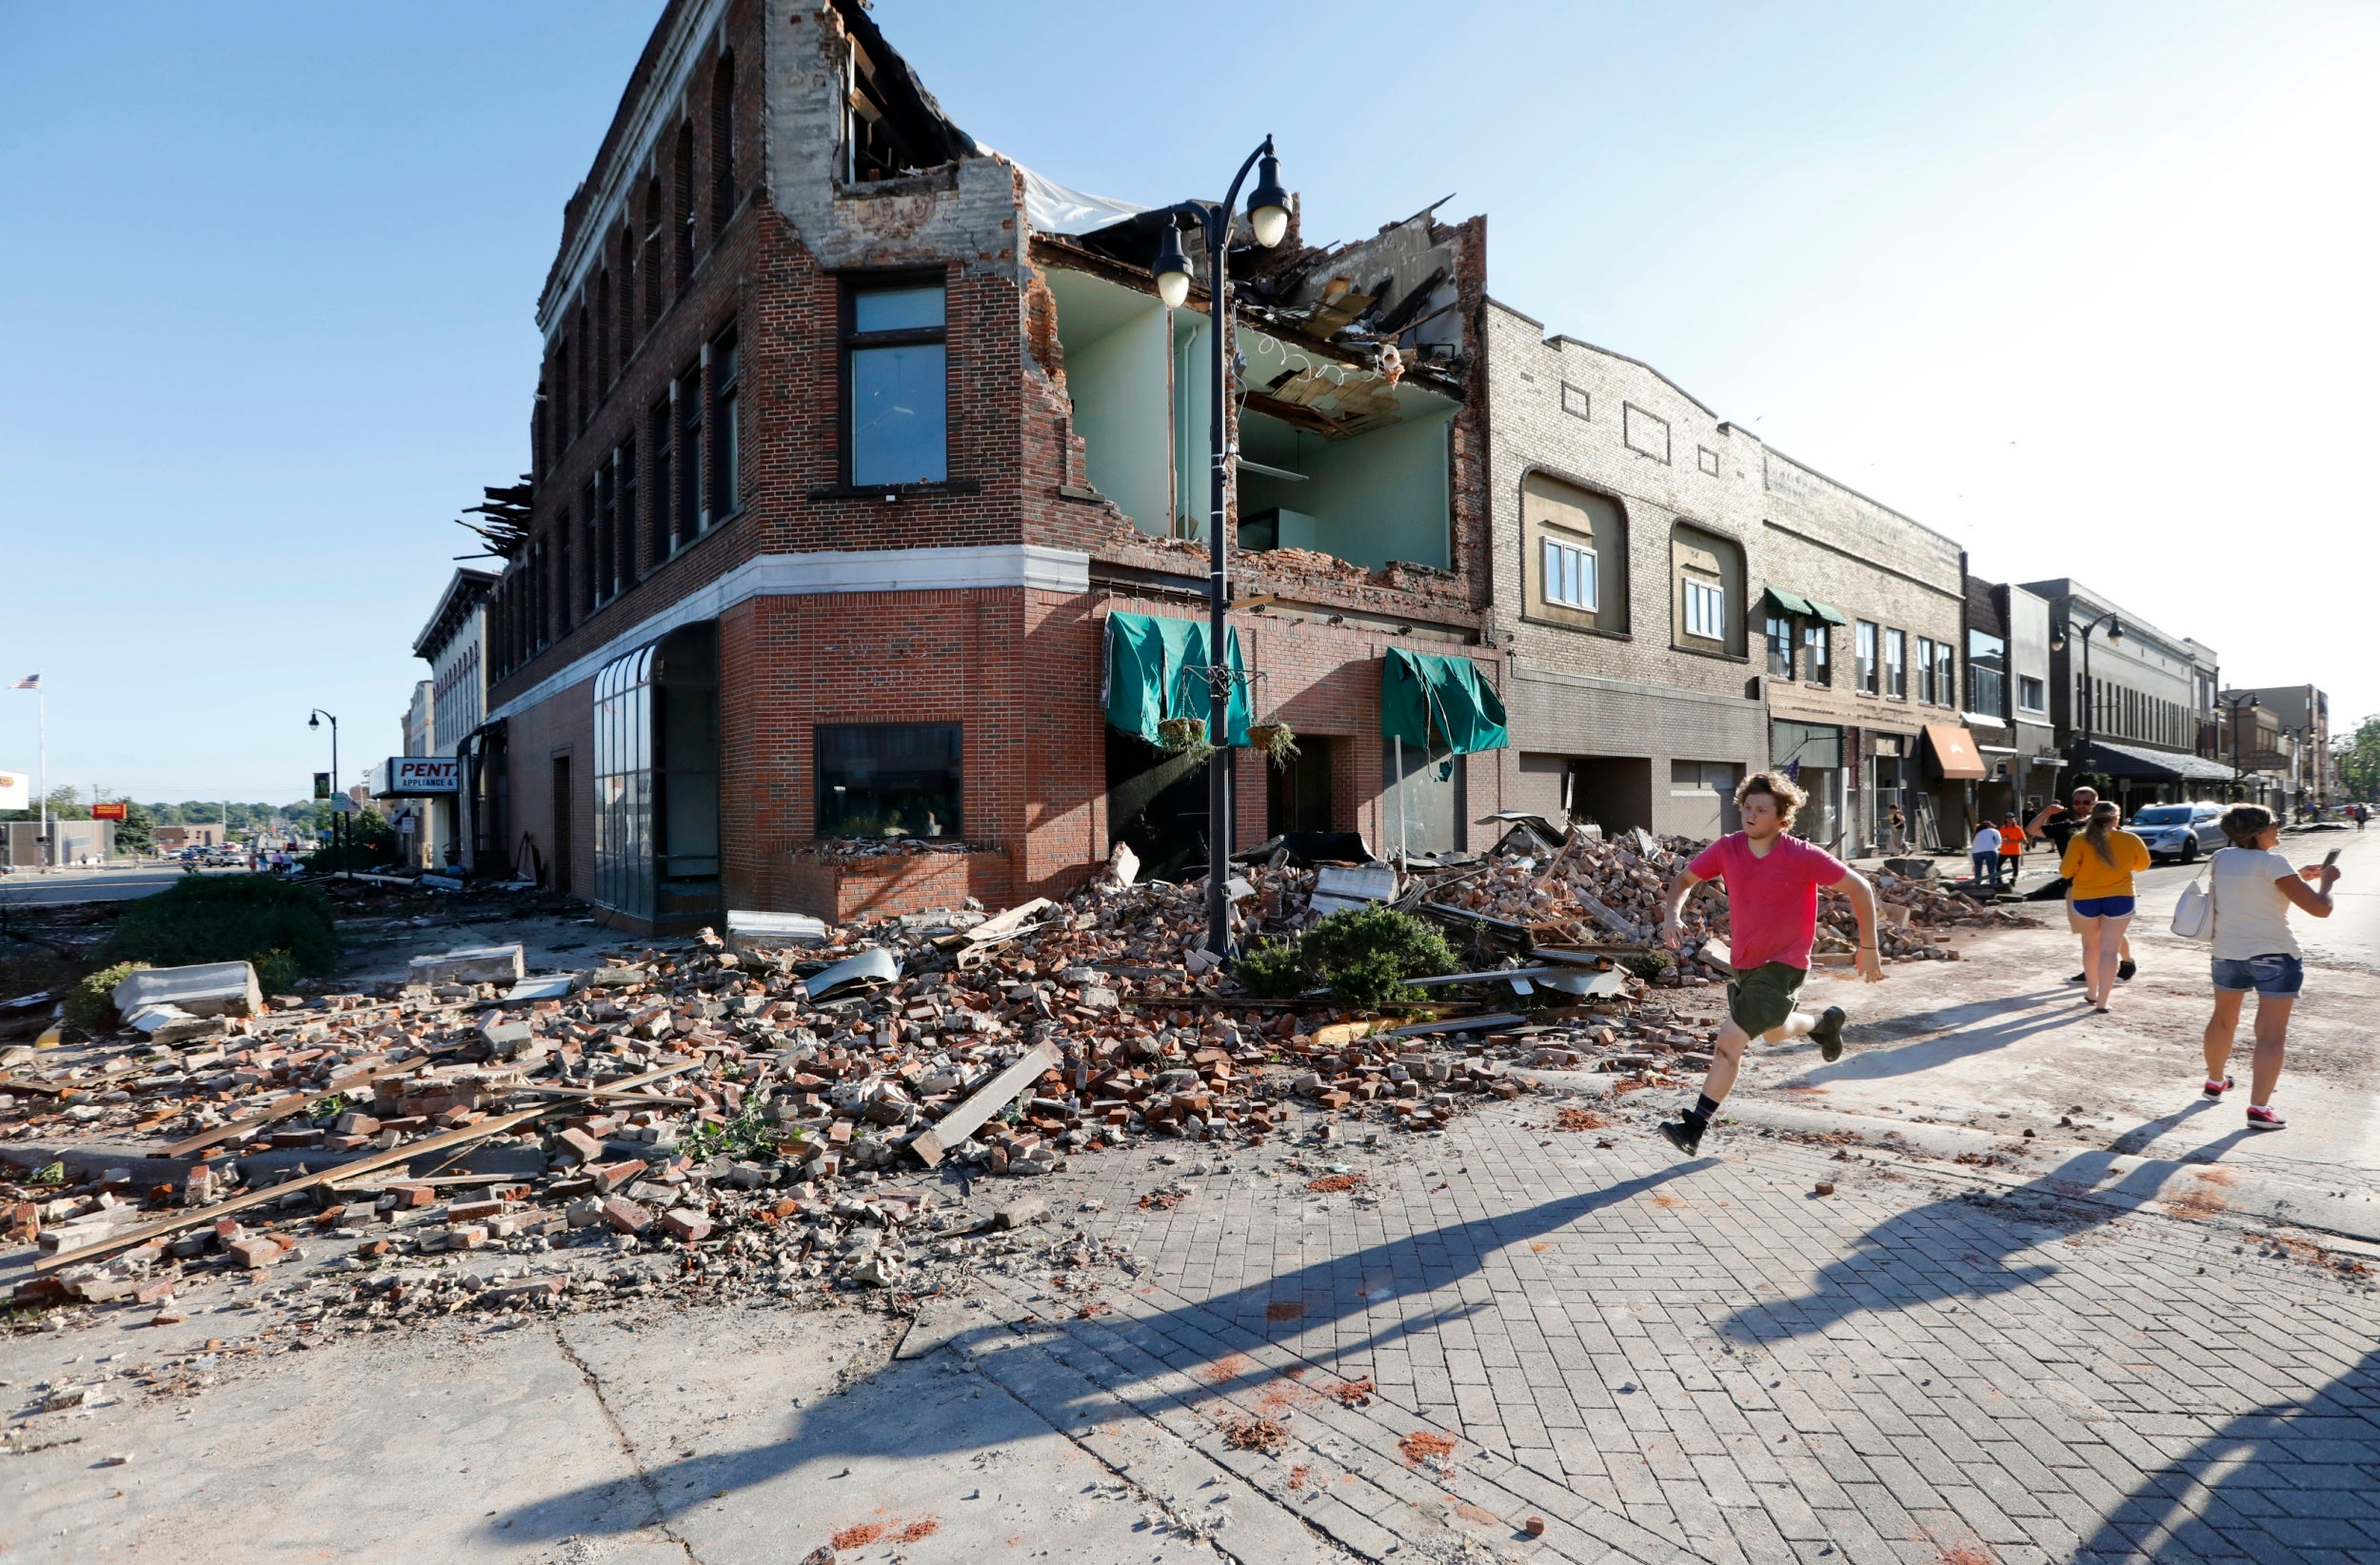 Iowa tornado: More than 25 separate tornadoes devastate towns as they wreak havoc across state